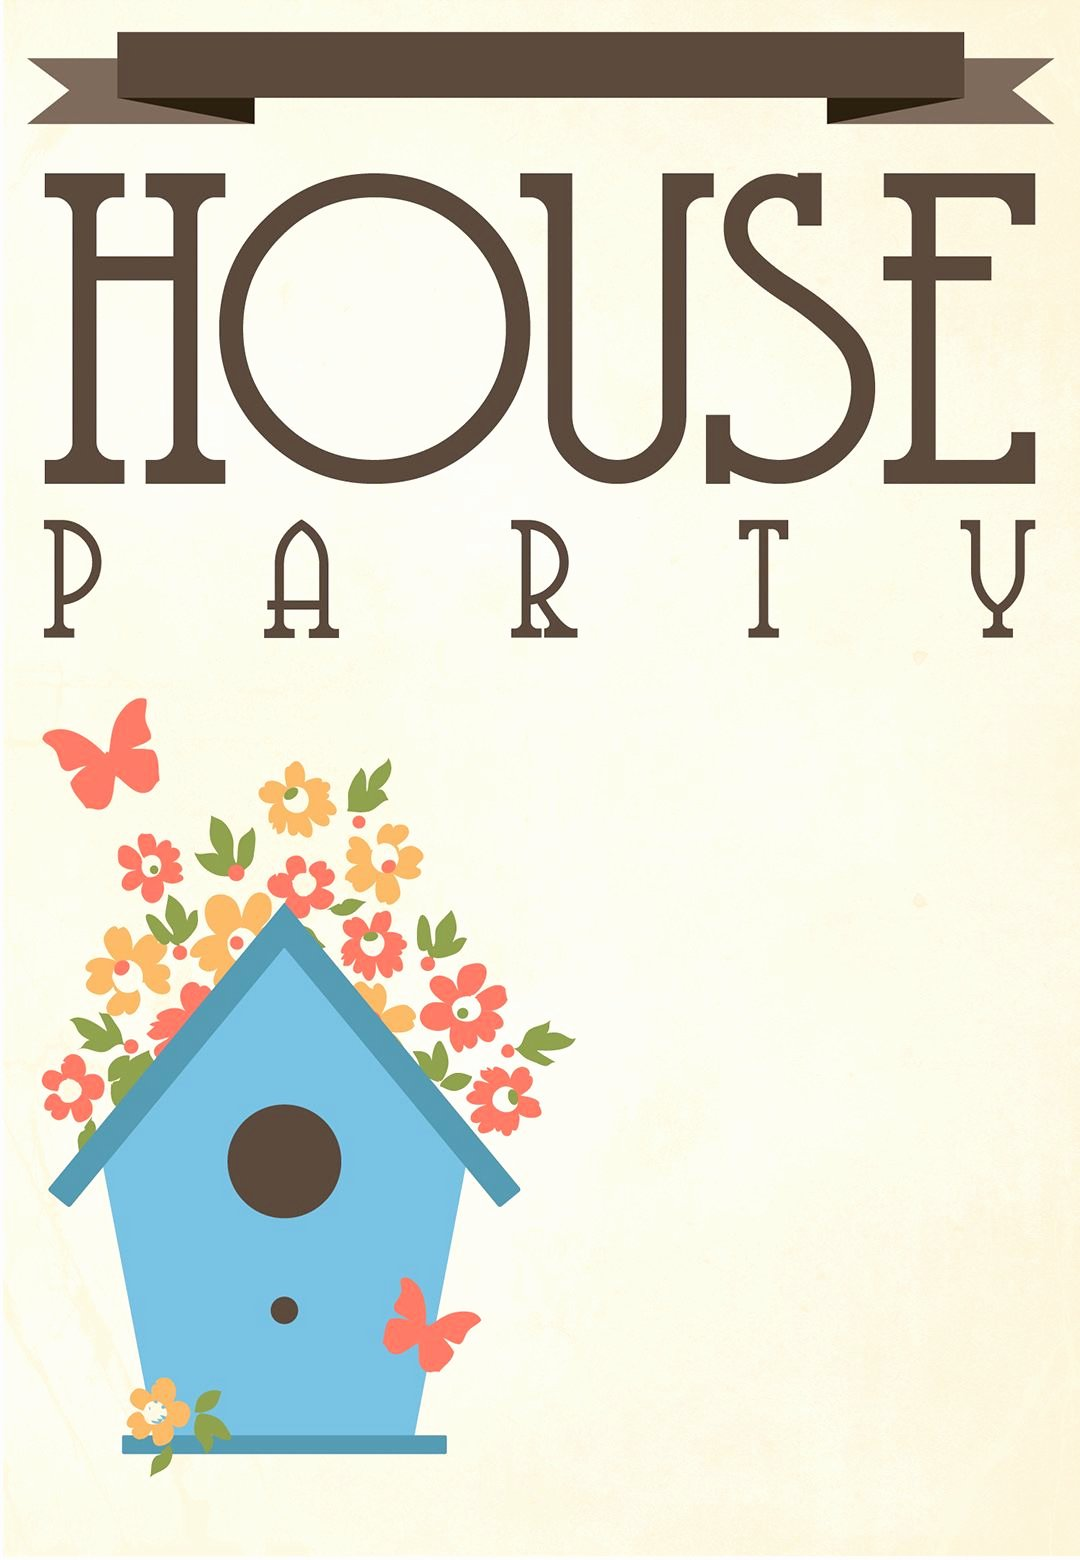 Free Open House Invitation Template Beautiful Free Printable House Party Invitation